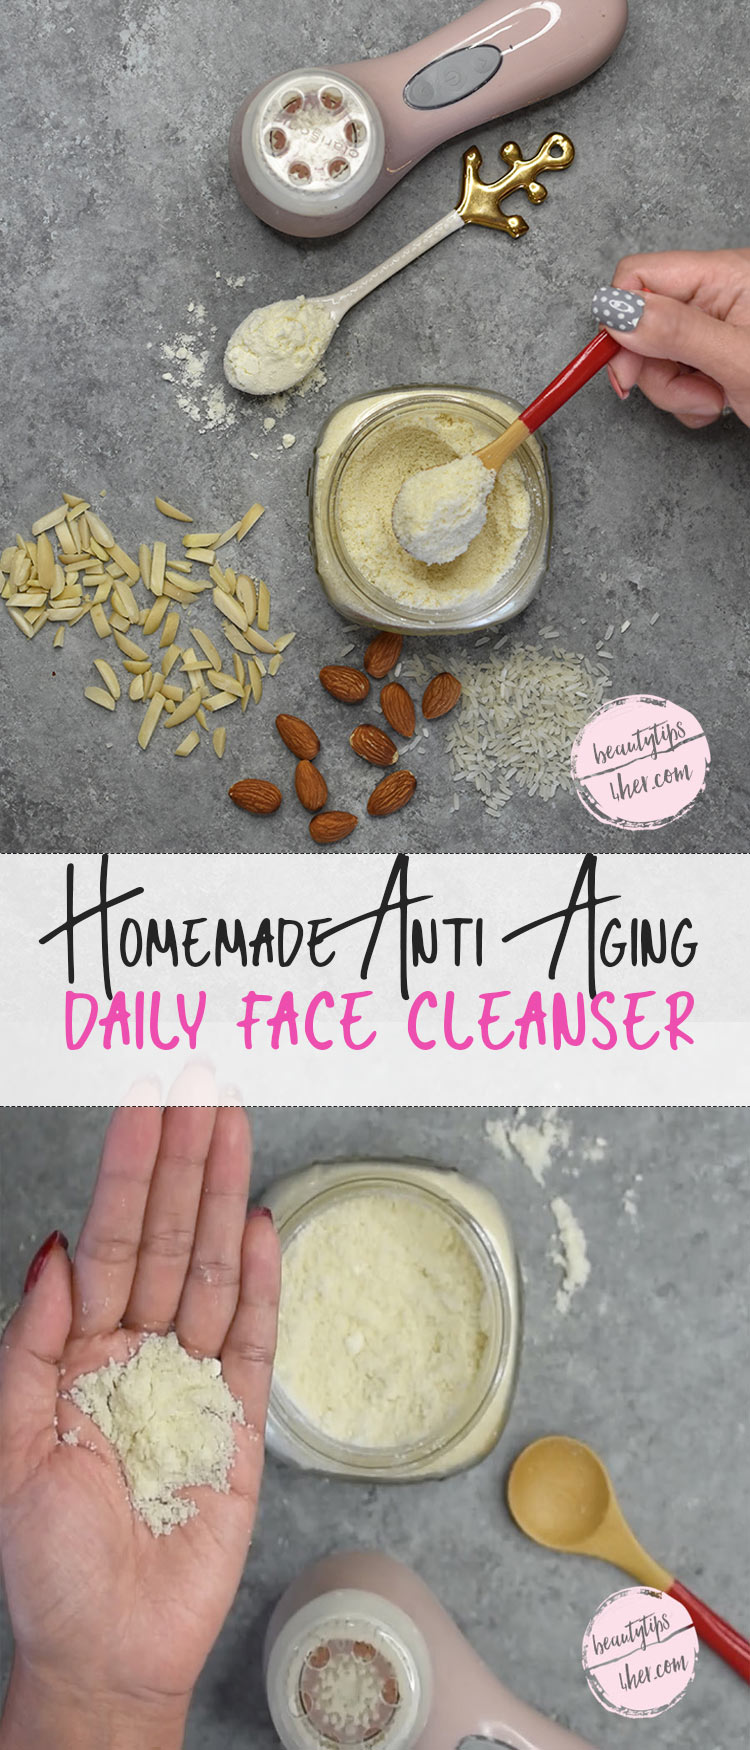 Homemade Anti Aging and Whitening Daily Face Cleanser ...